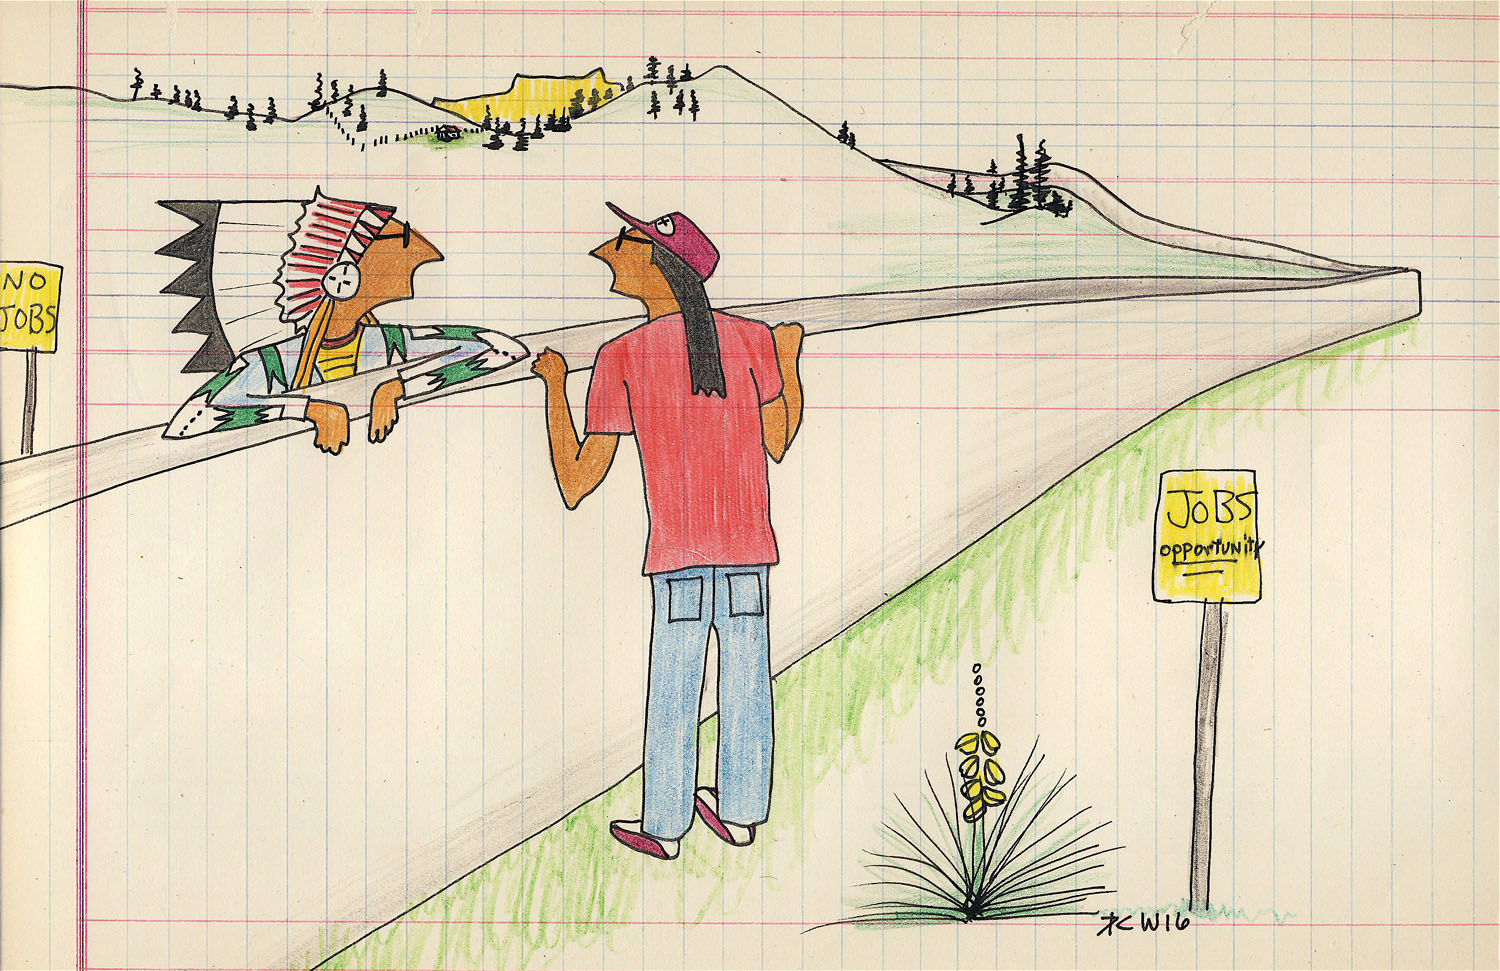 Editorial: Oglala Sioux Tribe must recognize rights of all its citizens